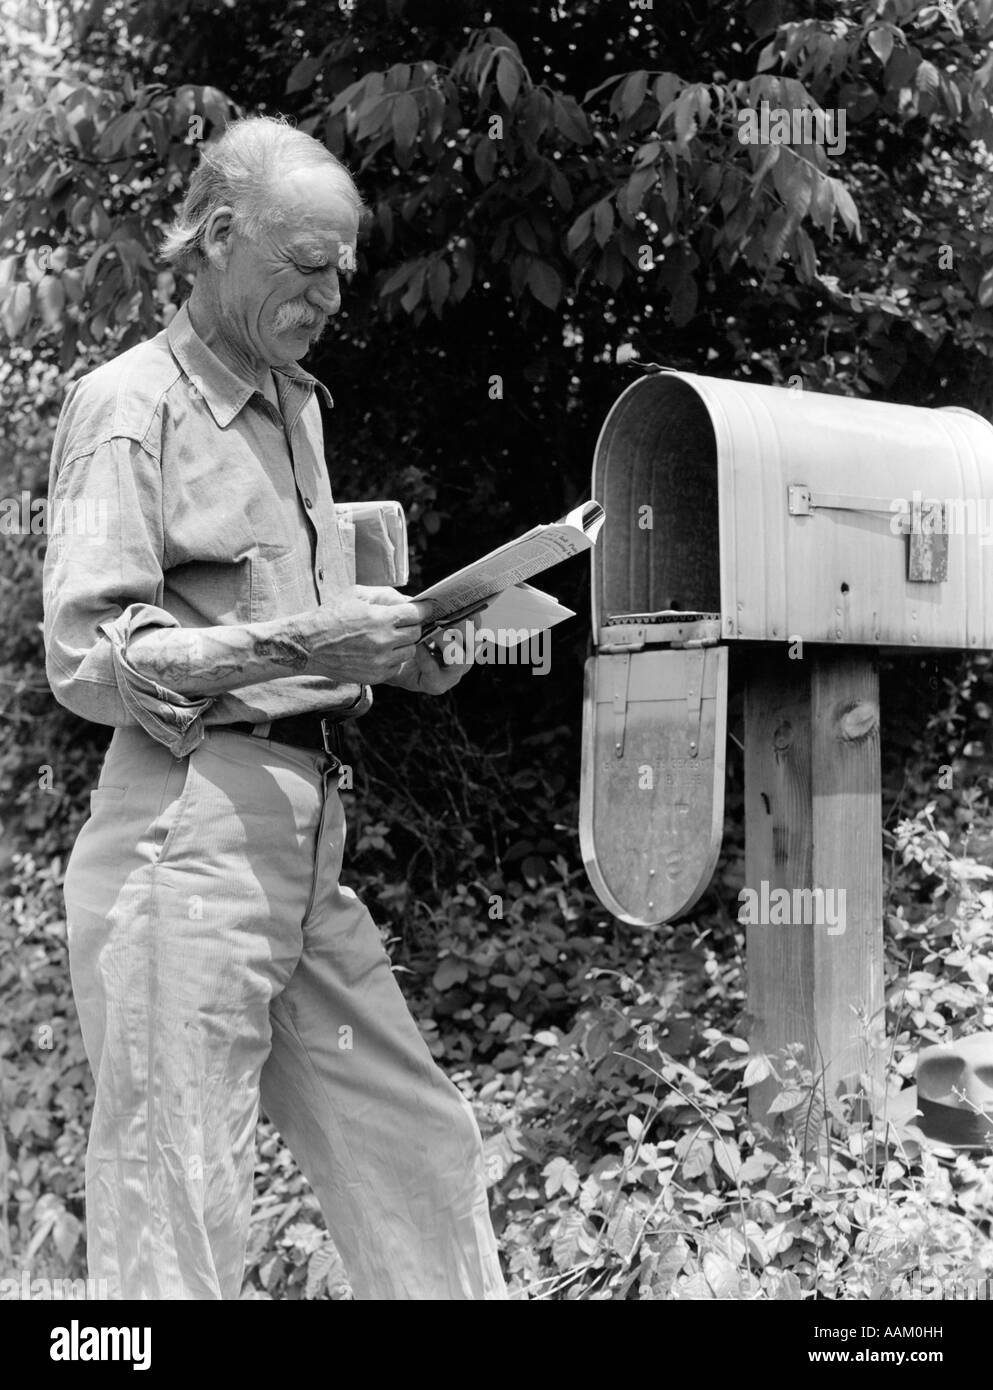 1940s SENIOR FARMER READING MAIL AT RURAL FREE DELIVERY MAIL BOX Stock Photo